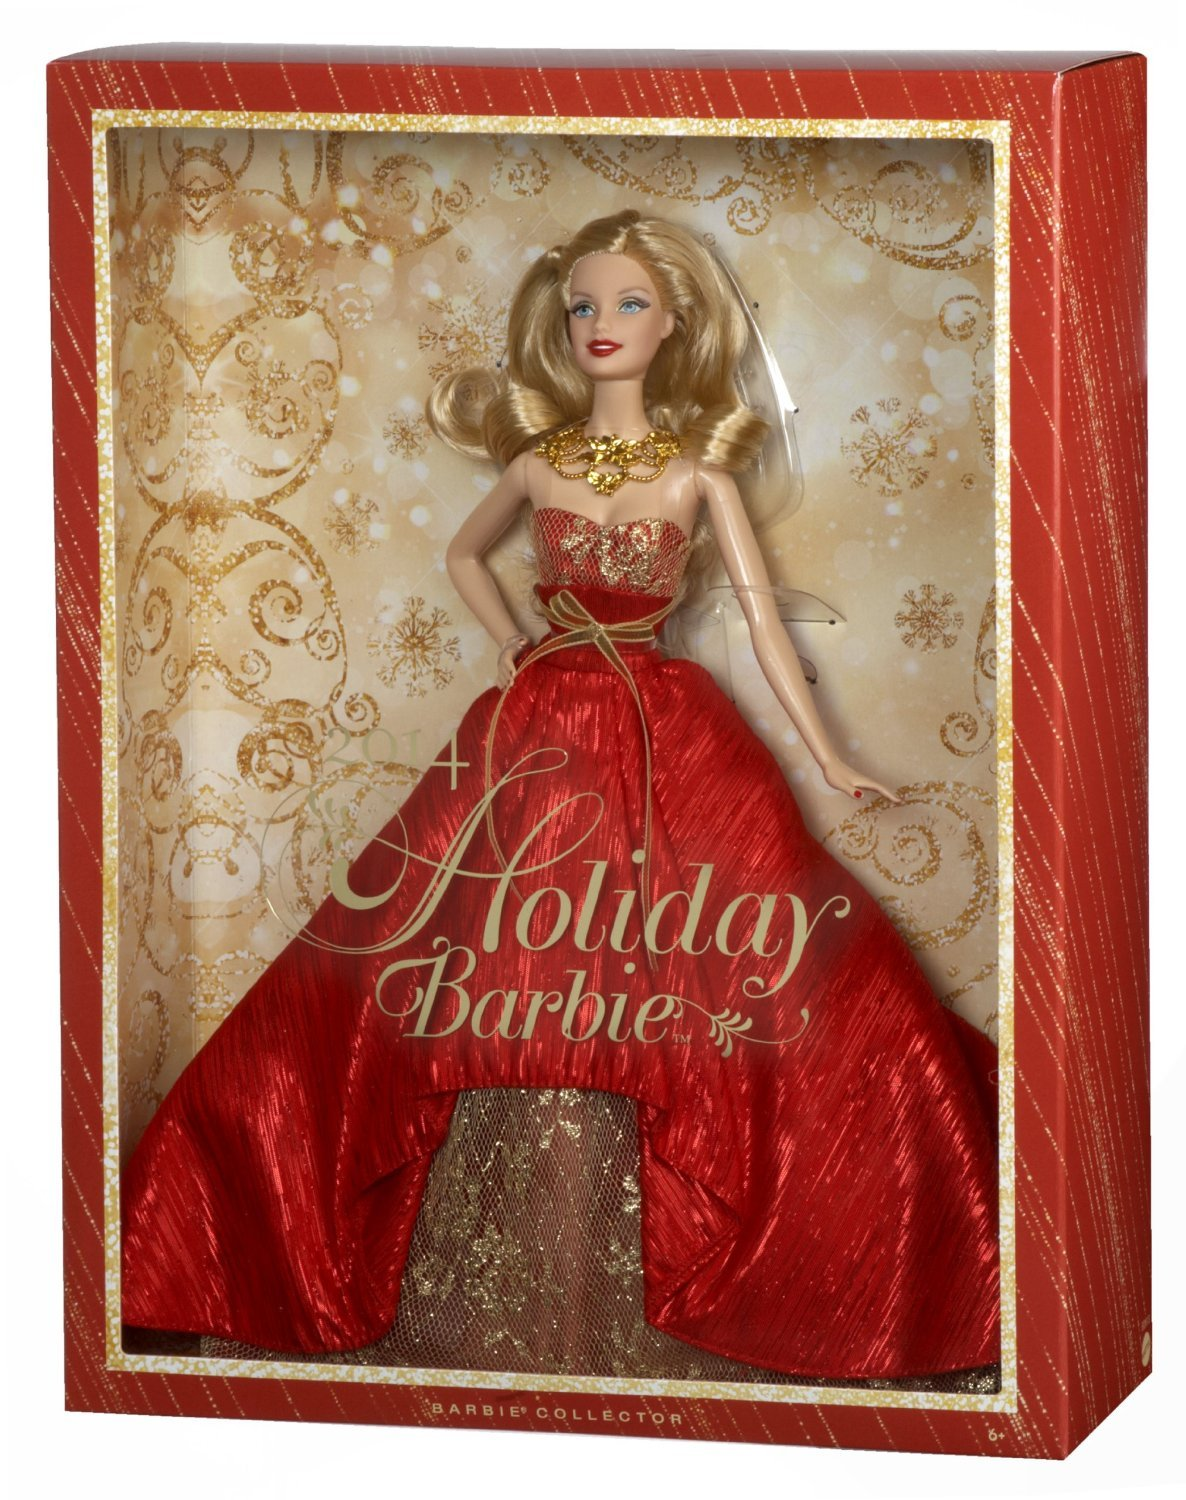 Image 2 of Holiday Barbie Doll 2014 in Posh Princess Red and Gold Satin Gown, Mattel